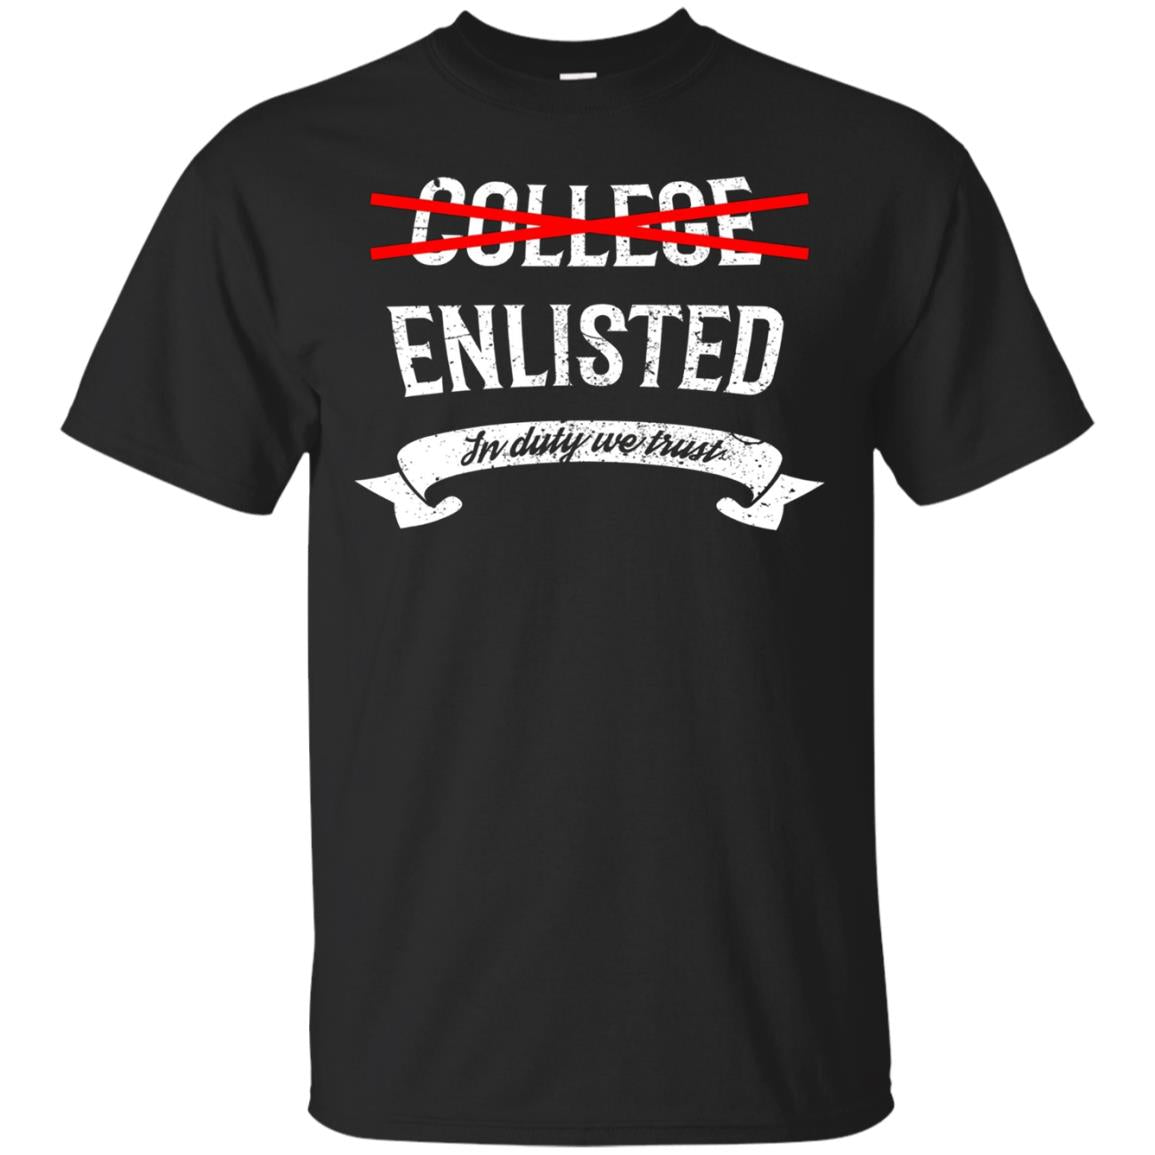 College Enlisted T-Shirt Funny Veteran Gift Shirt Idea